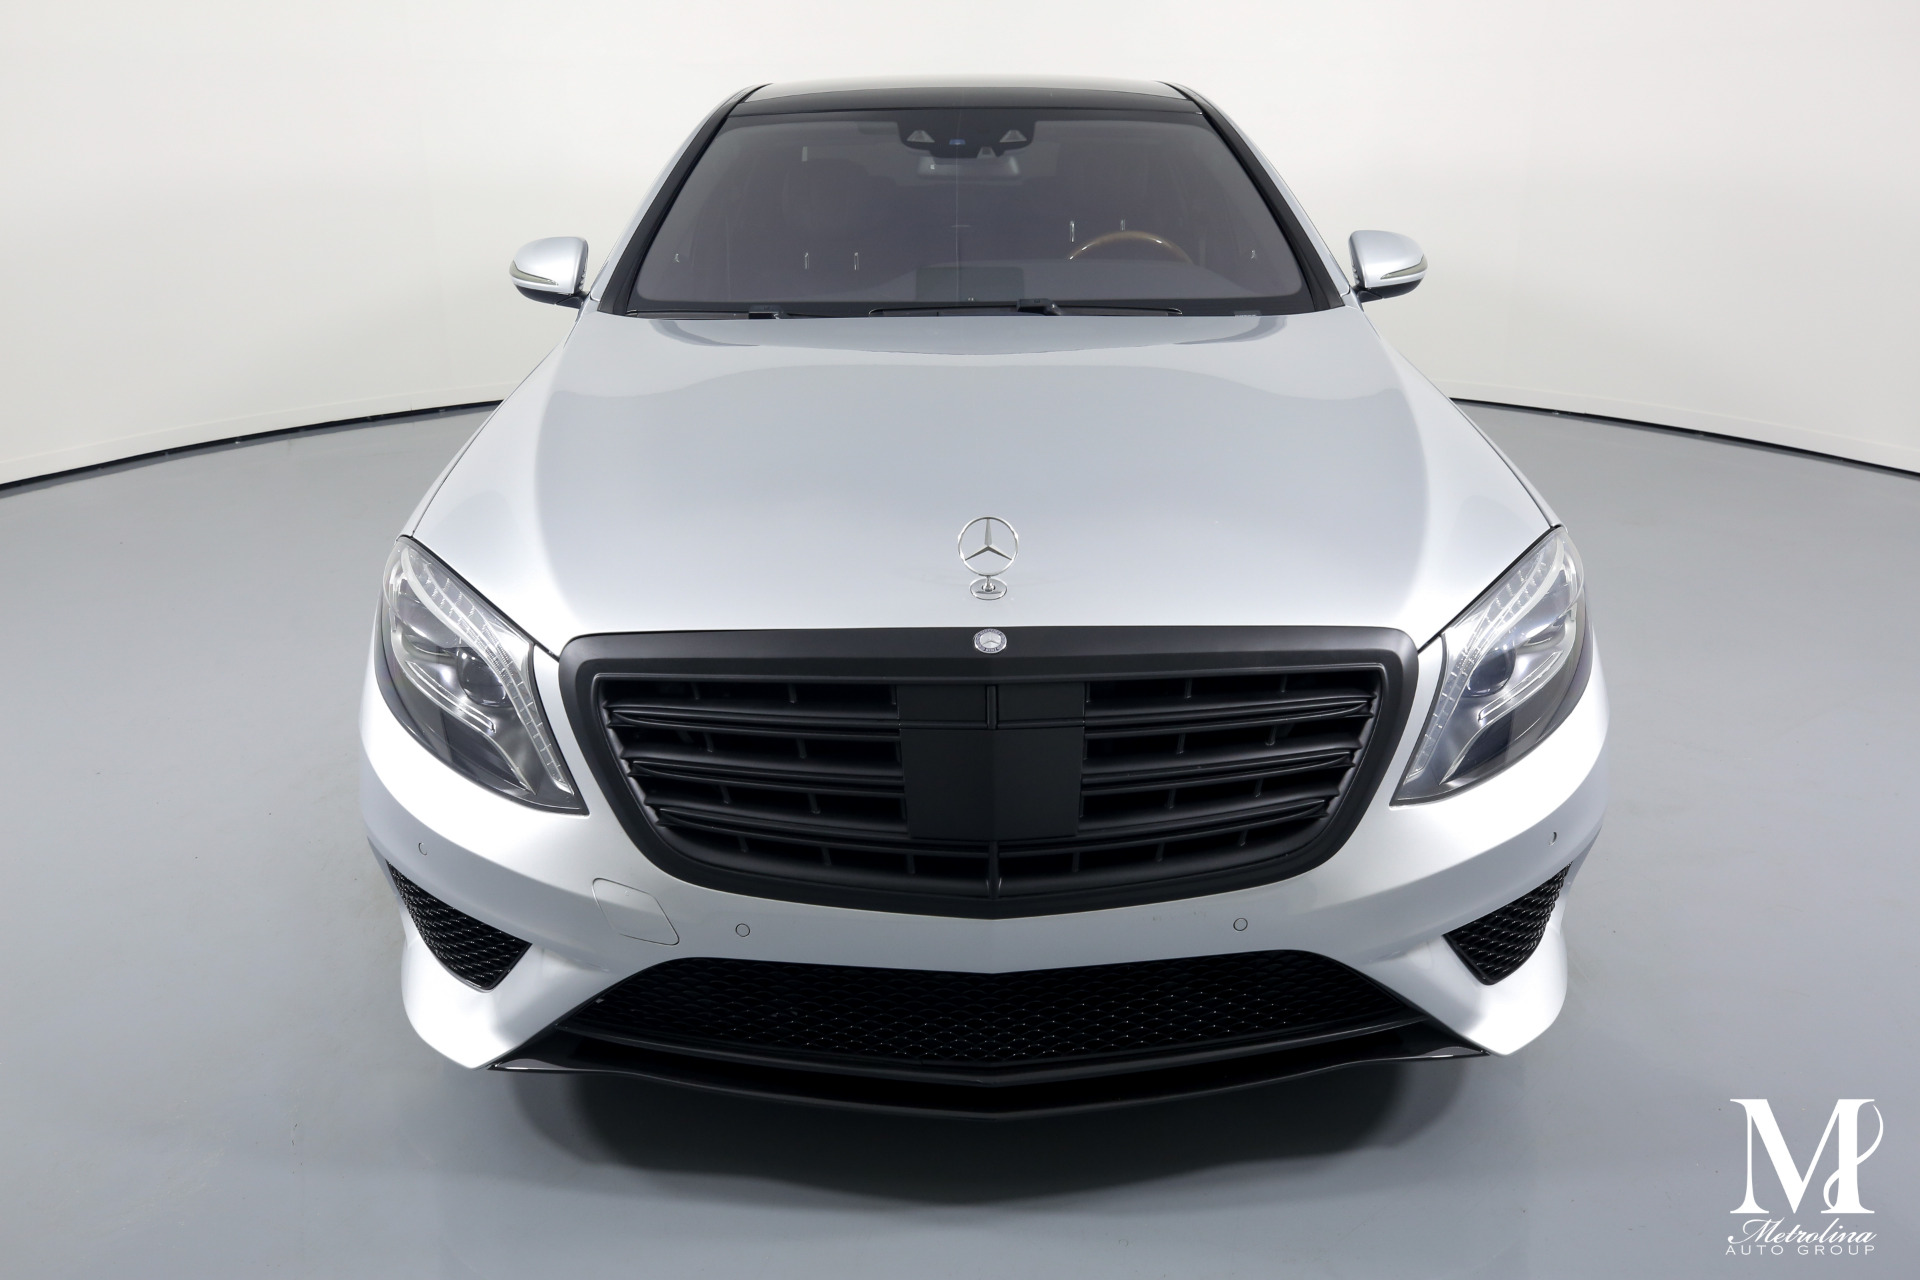 Used 2014 Mercedes-Benz S-Class S 550 for sale $44,996 at Metrolina Auto Group in Charlotte NC 28217 - 3